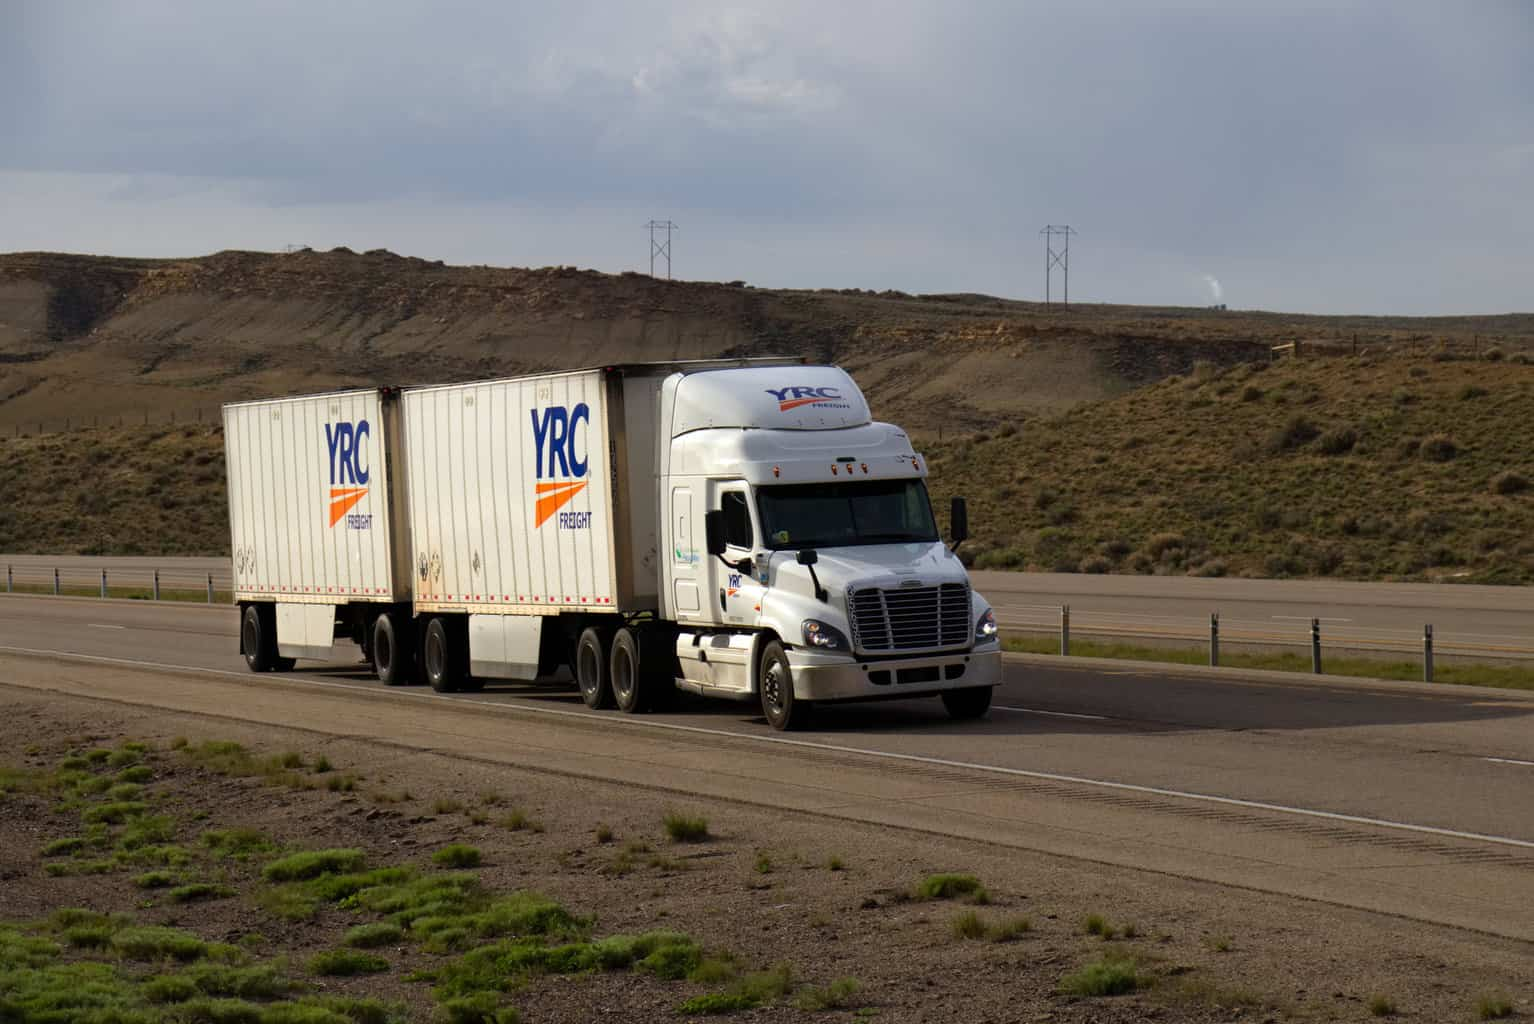 Photo of Gov't lawsuit against YRC shines light on LTL reweighing practices